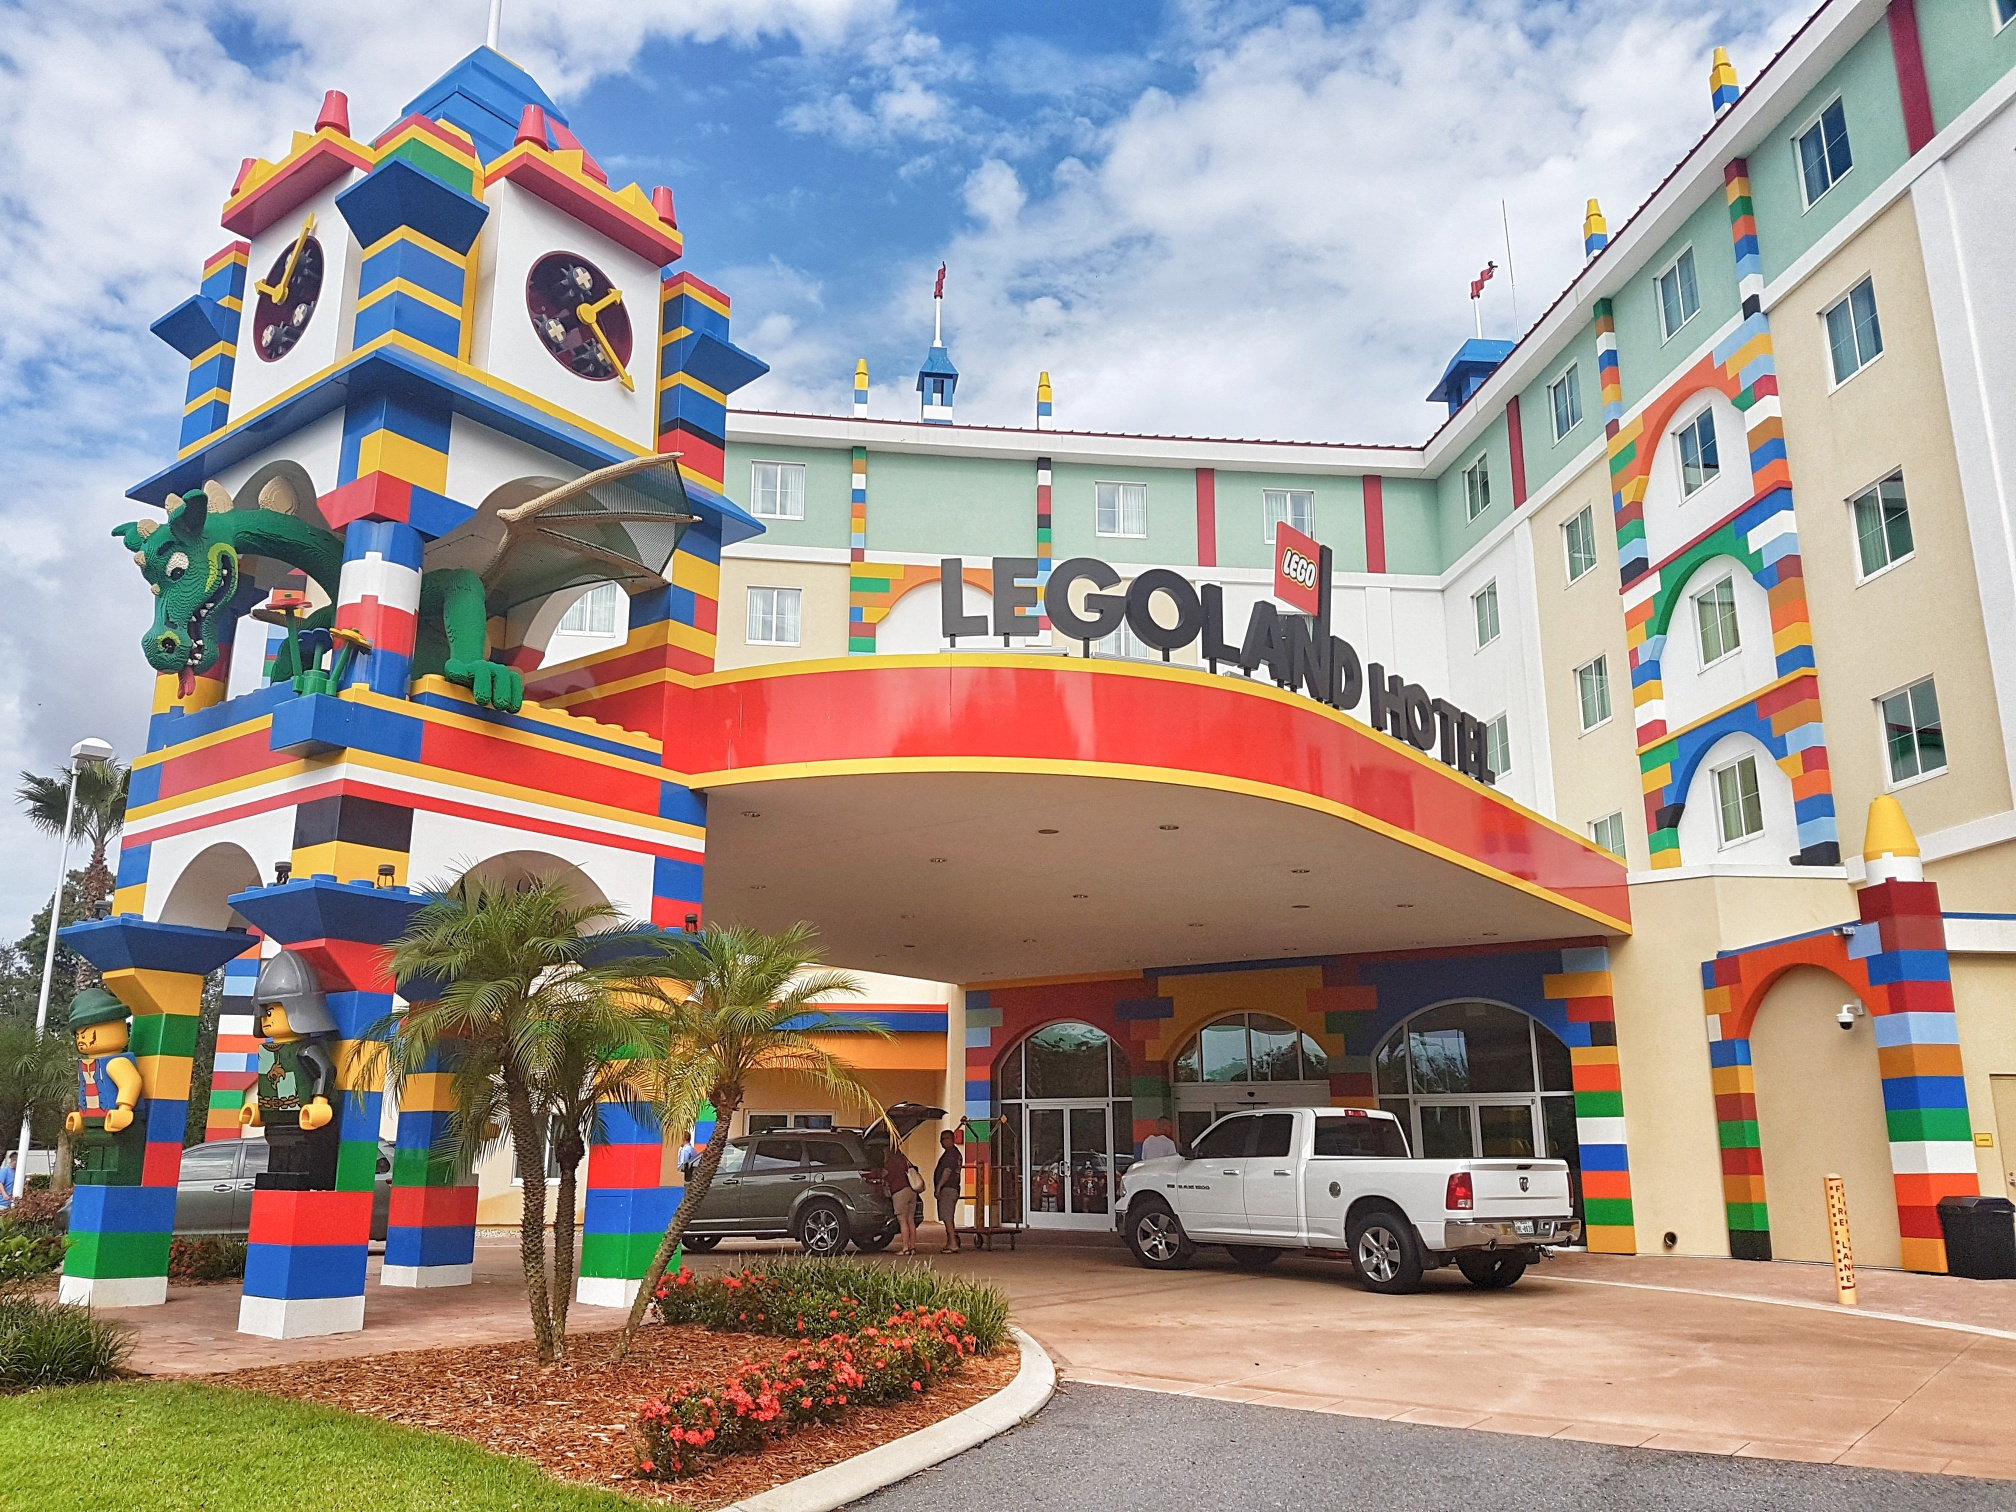 LEGOLAND Florida is a must see